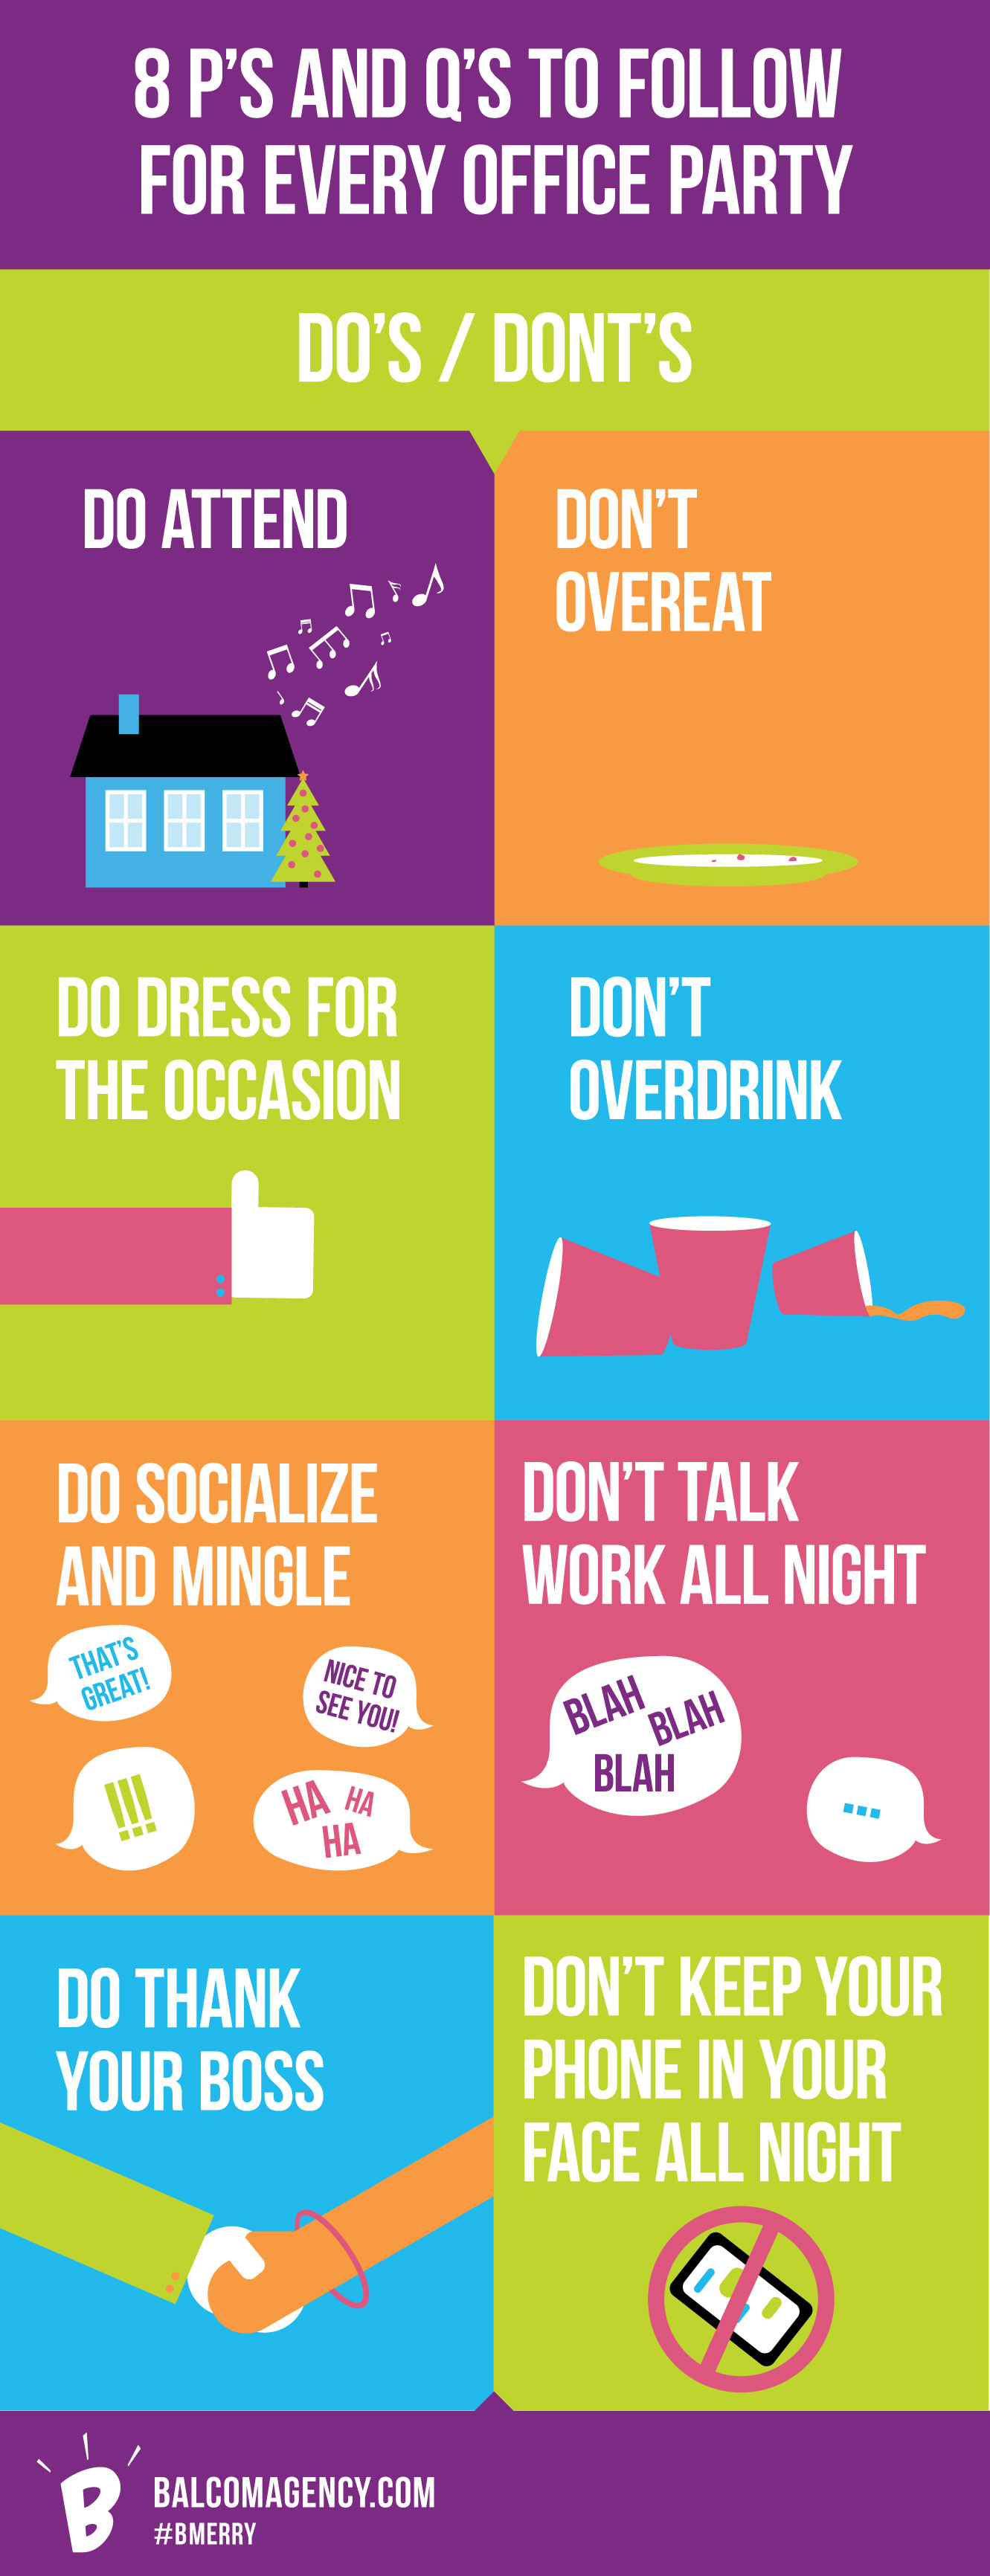 office party do's and don'ts infographic